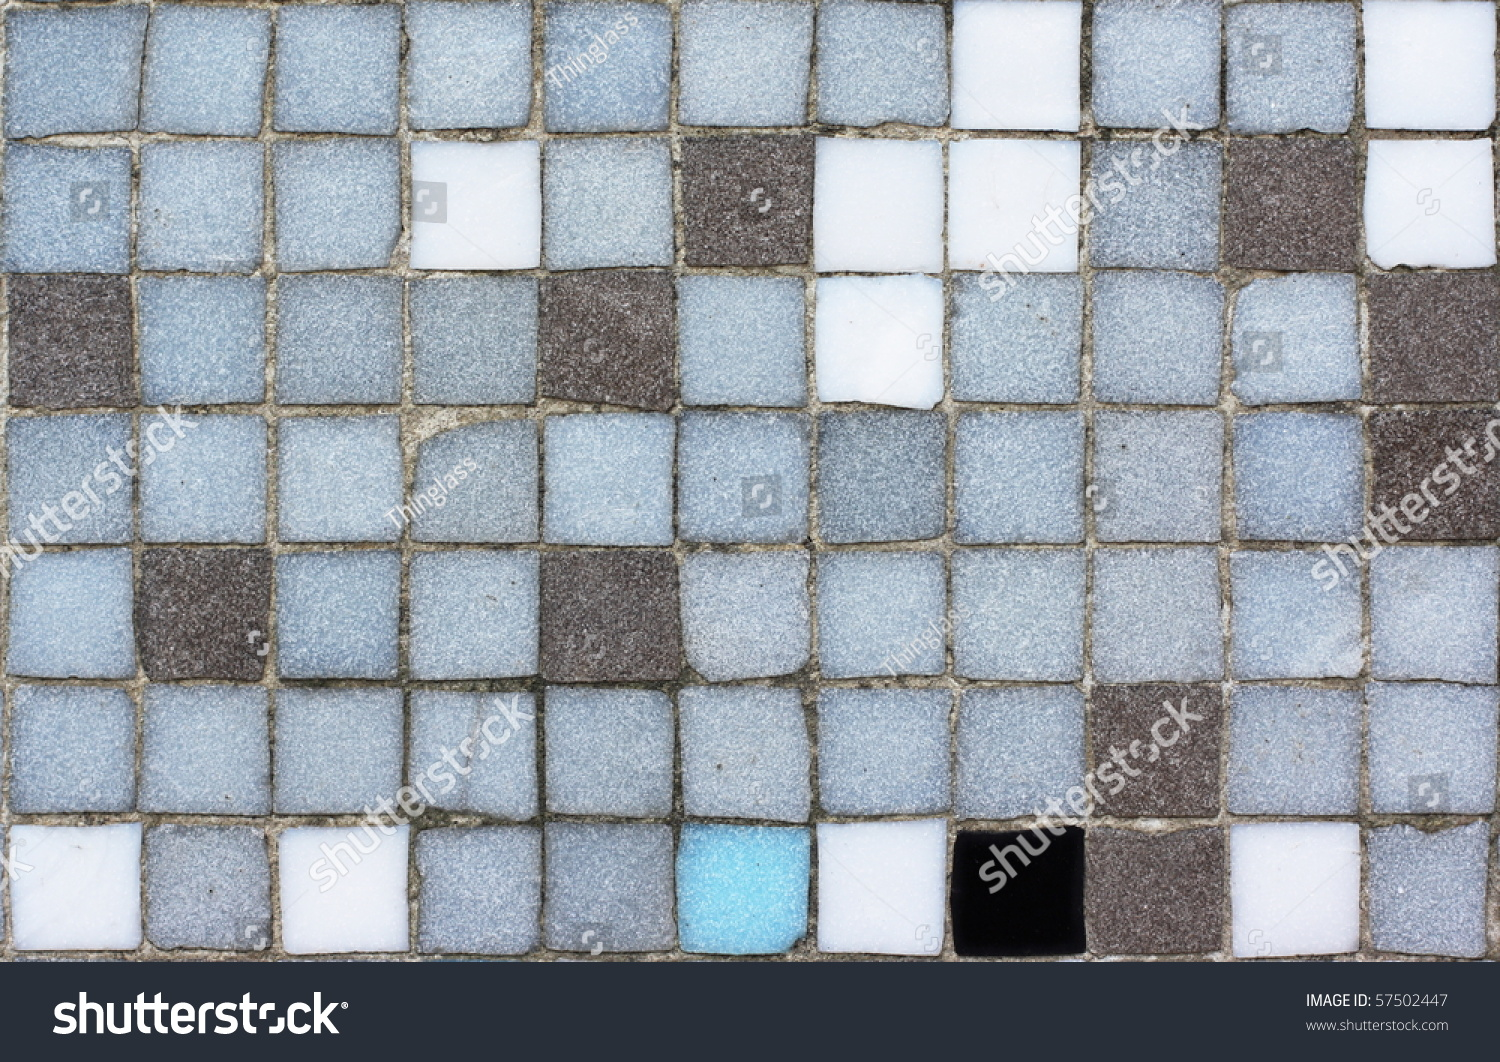 Close Mosaic Tiles On Wall Typical Stock Photo (Royalty Free ...